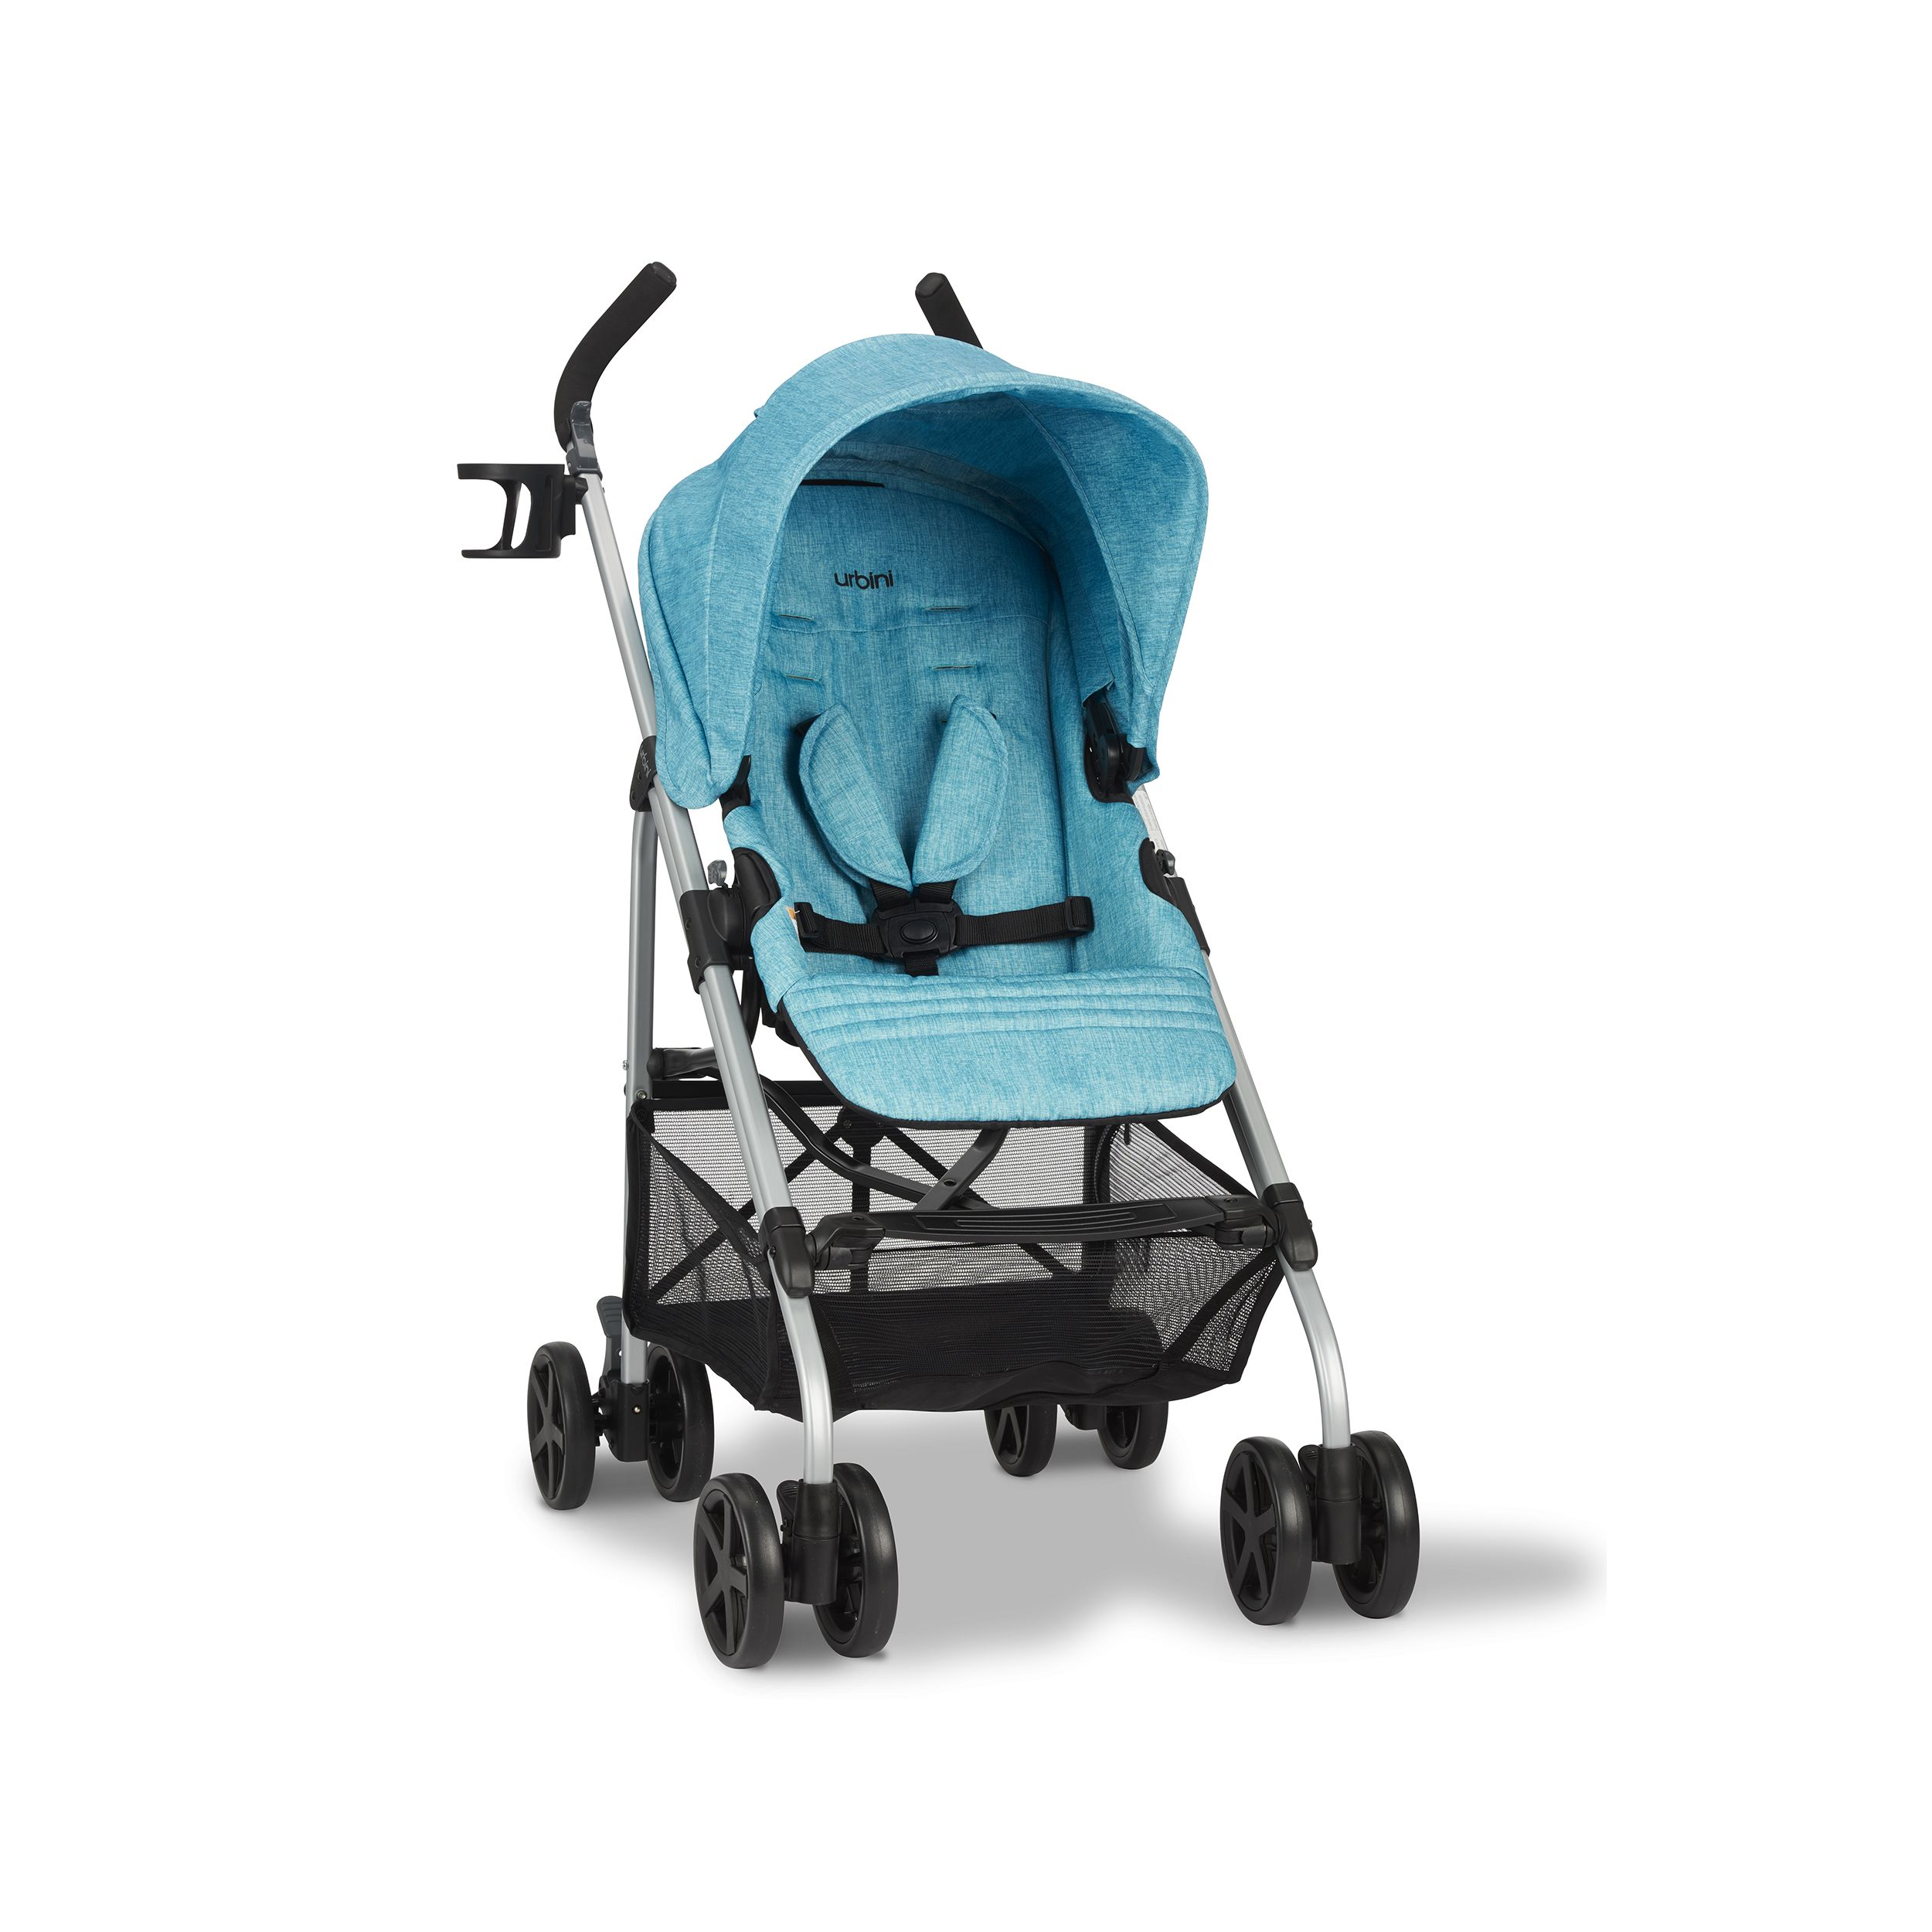 Babies R Us Umbrella Stroller With Canopy Baby Baby Car Seats Baby Strollers Umbrella Stroller